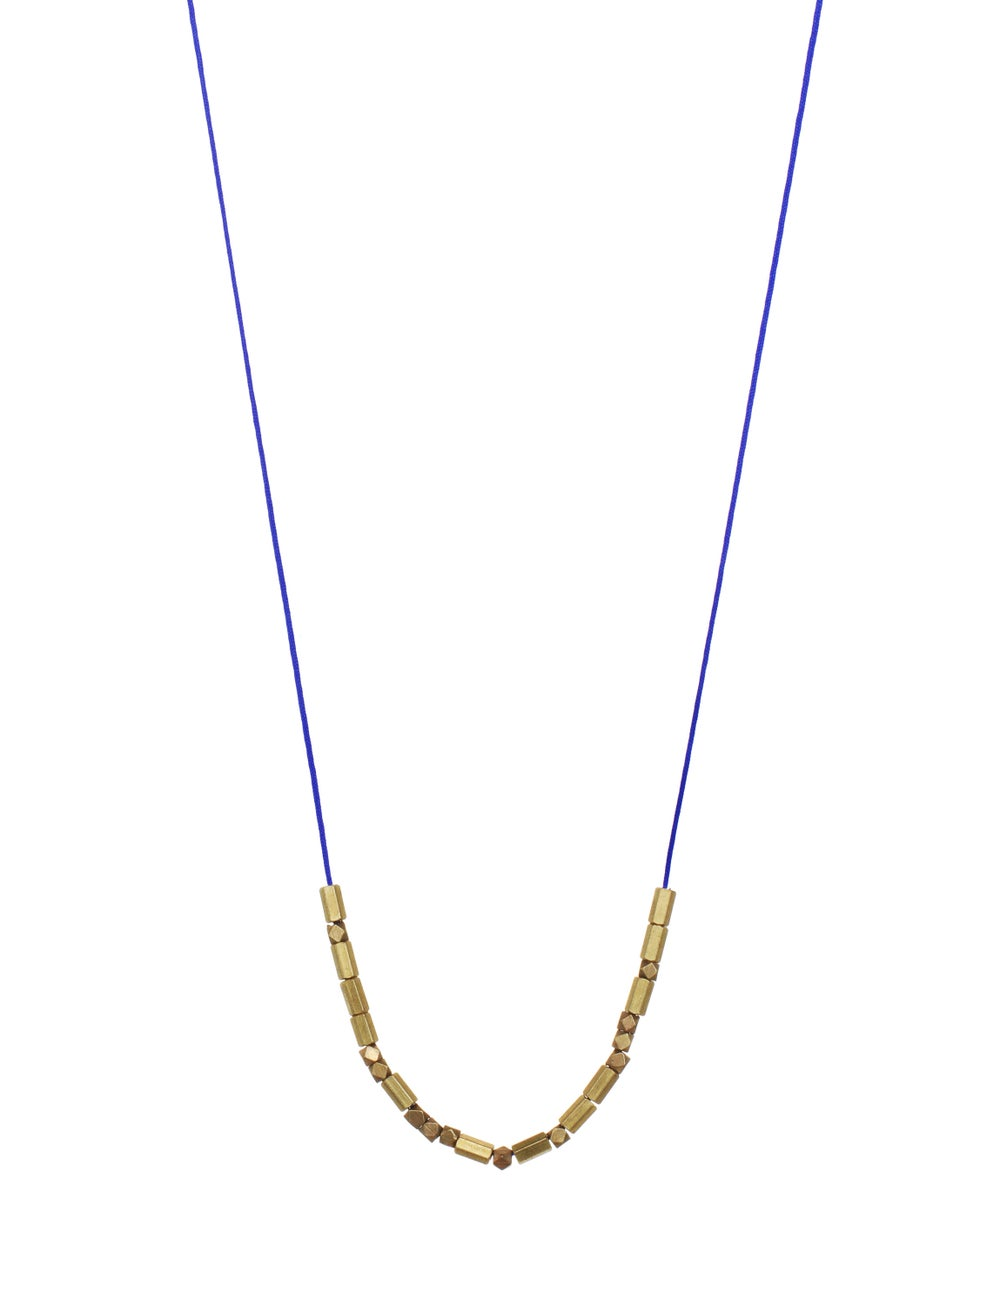 Image of FACETED BRASS BEAD + CORD necklace